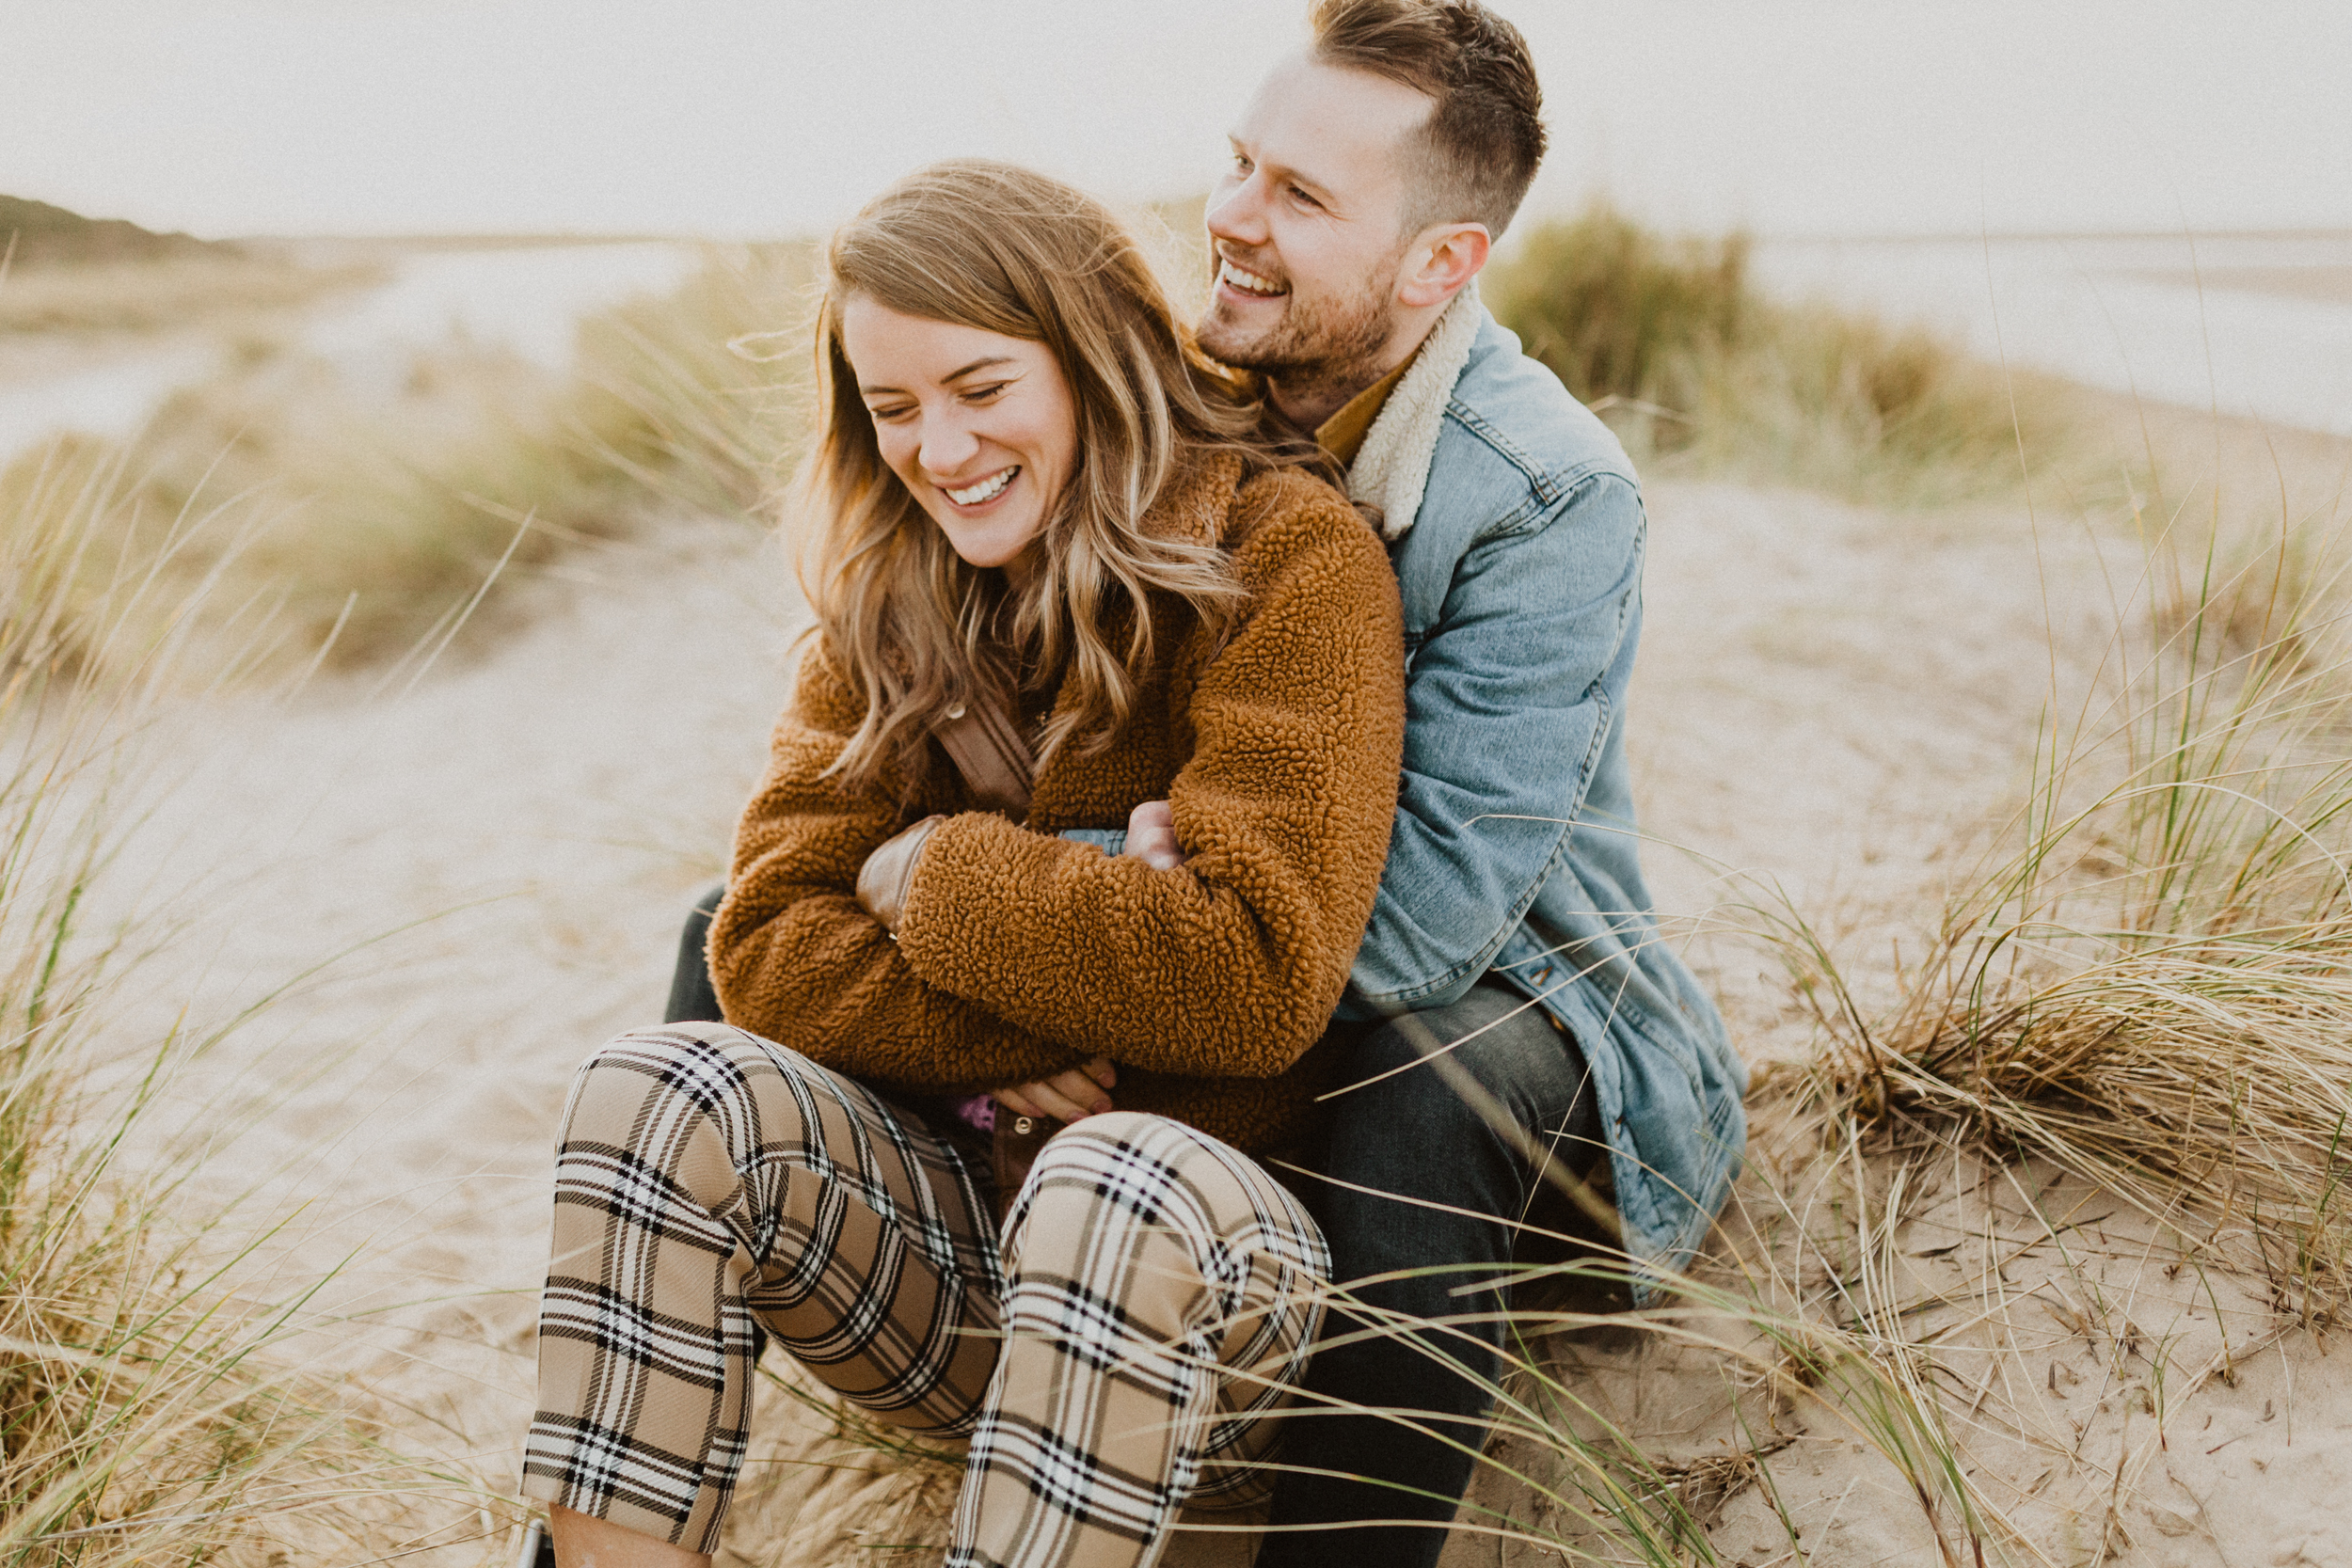 Claire-Liam-Beach-Coastal-Engagement-Session-Norfolk-Darina-Stoda-Photography-5.jpg